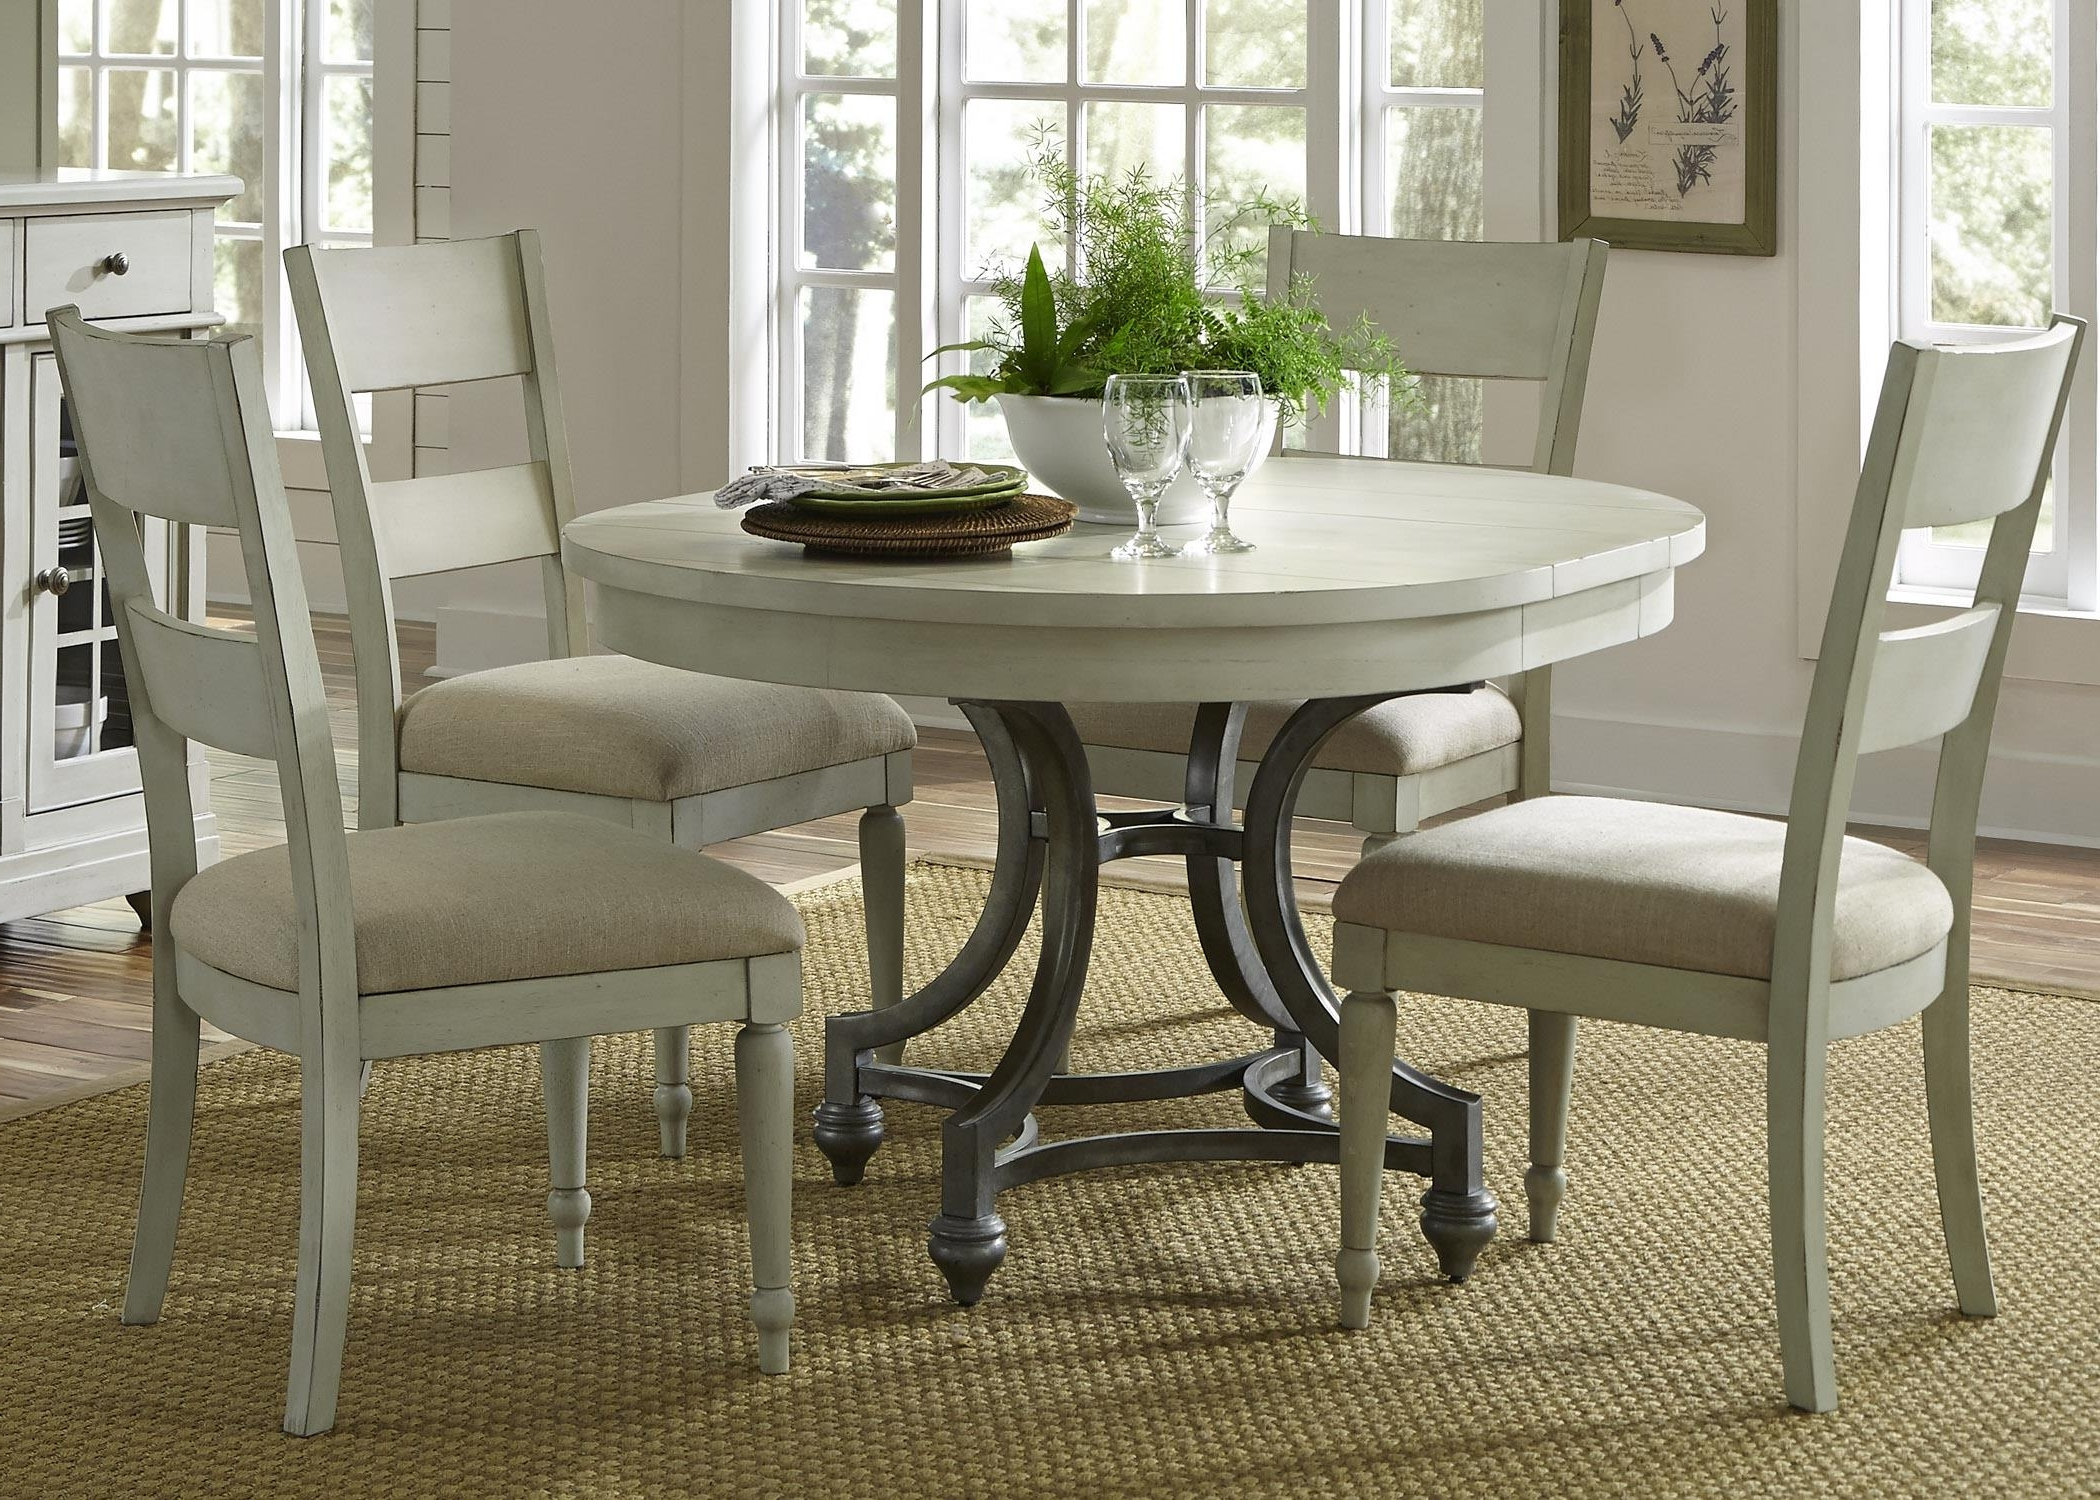 Round Table With 4 Slat Back Chairs Setliberty Furniture (View 17 of 25)